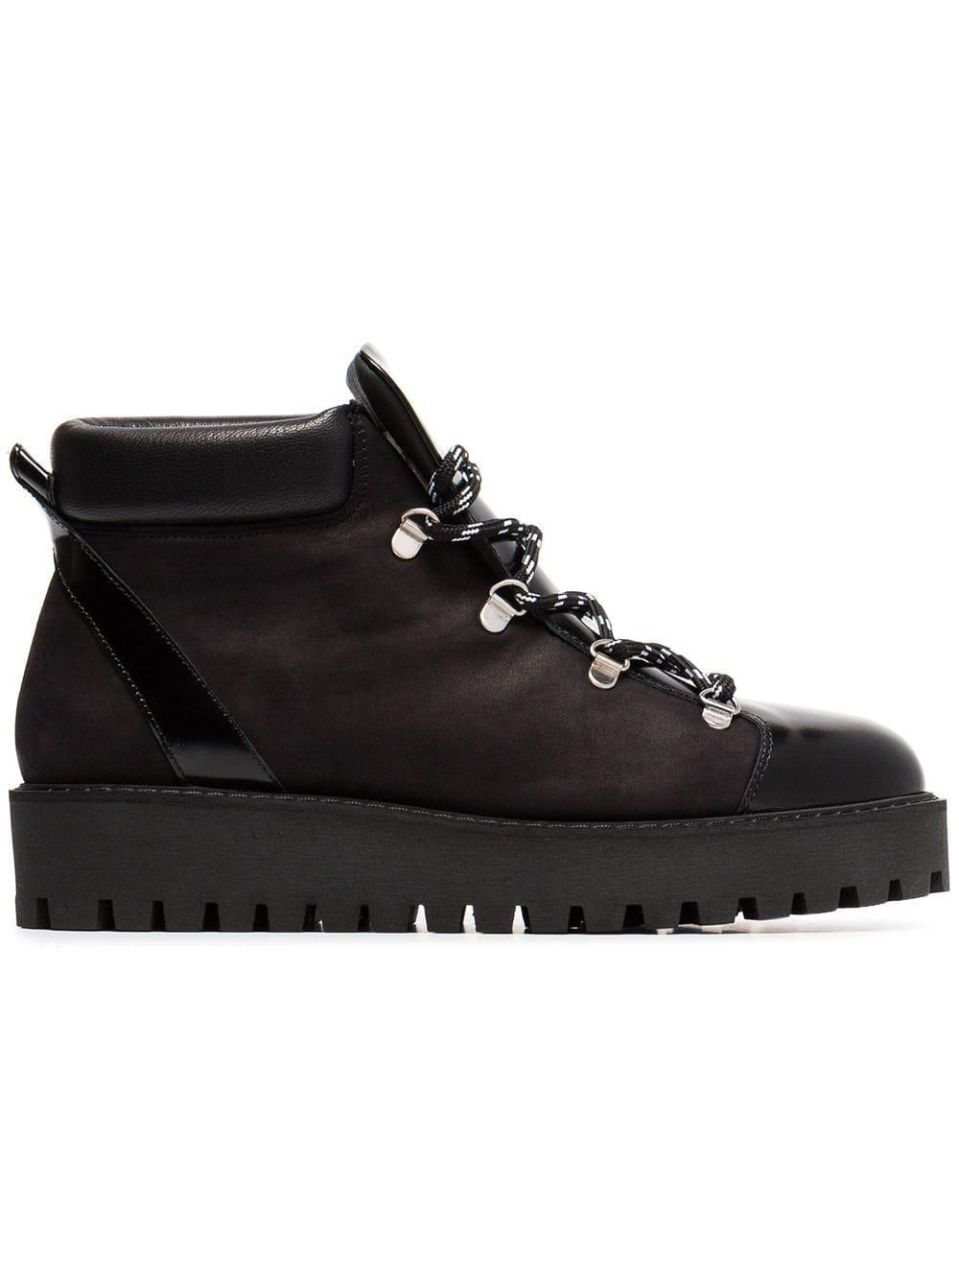 40b9e89a6560 These 15 Black Friday Sale Shoes Are Screaming